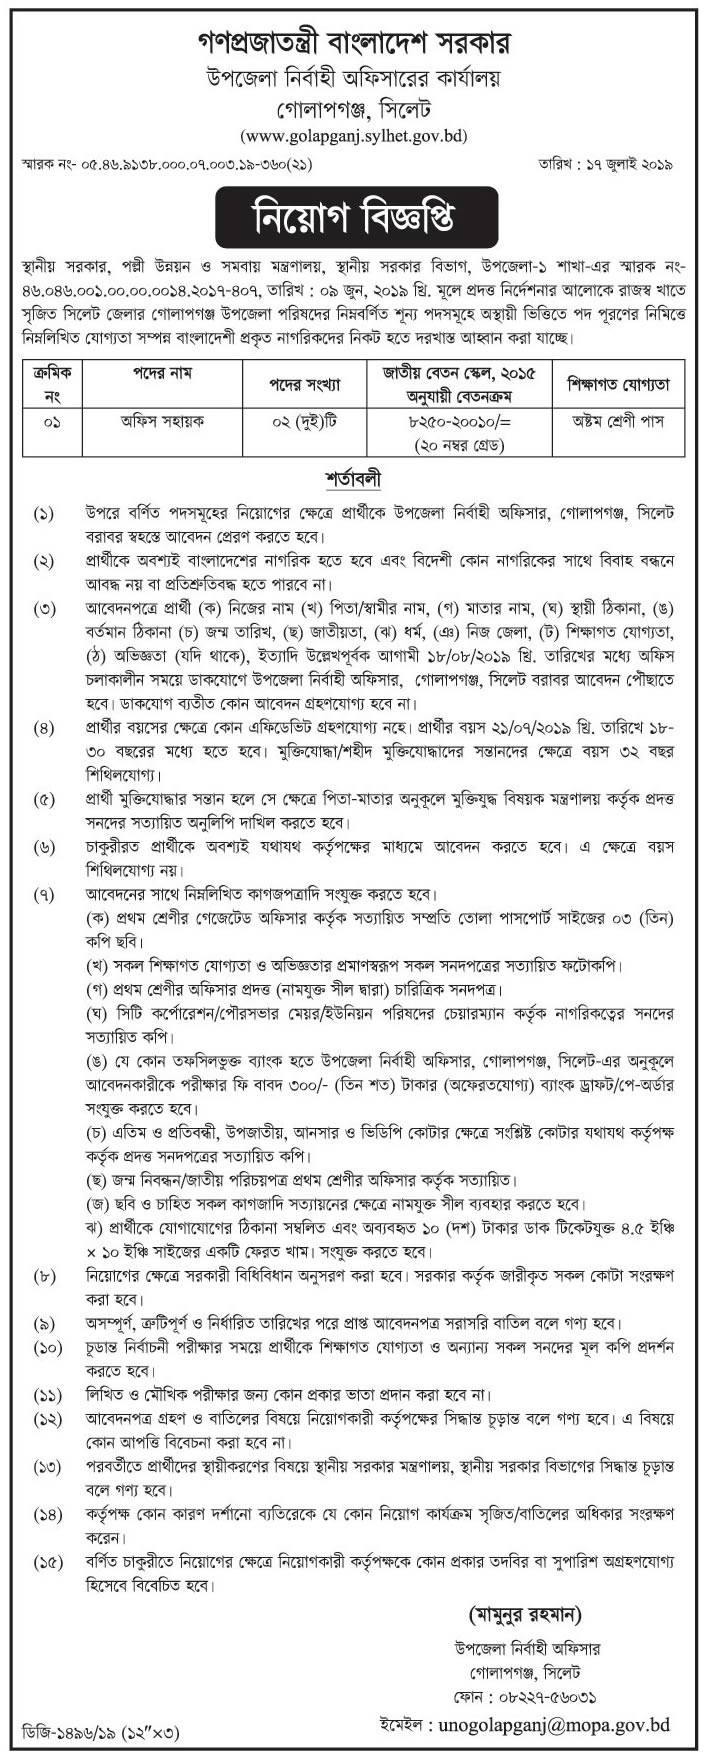 Local Government Engineering Department (LGED) Job Circular 2019